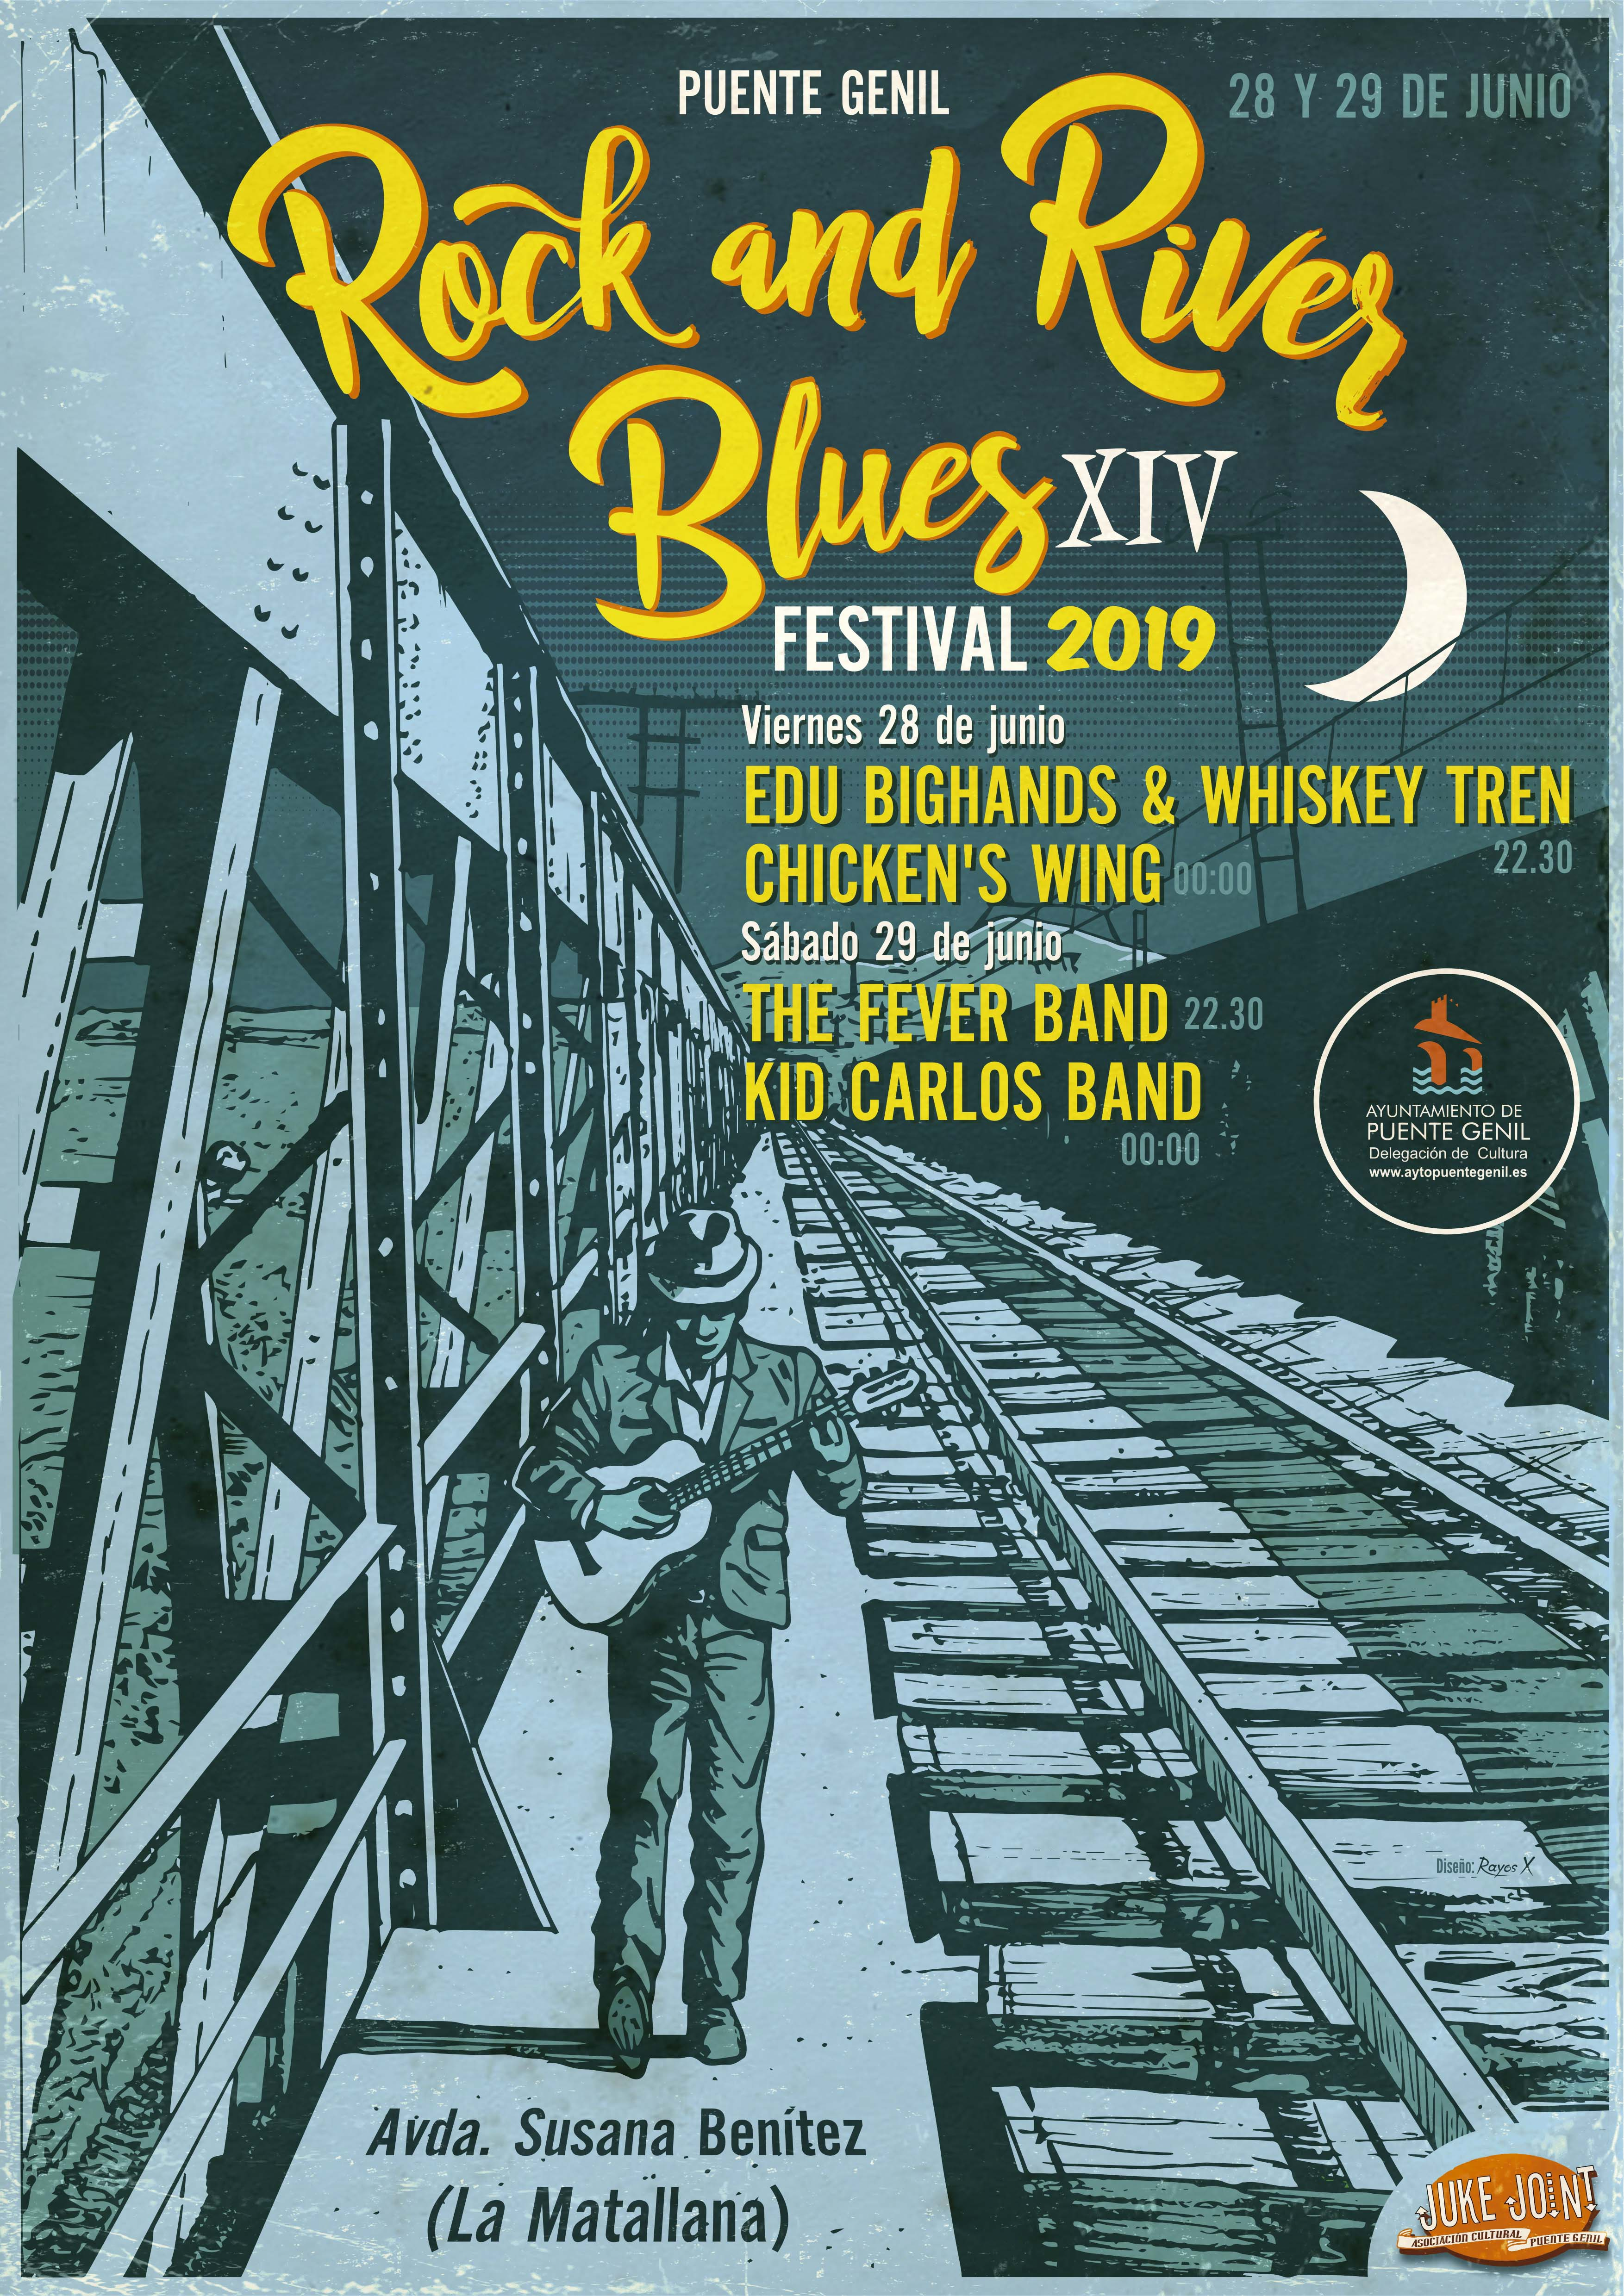 Rock and River XIV Festival 2019